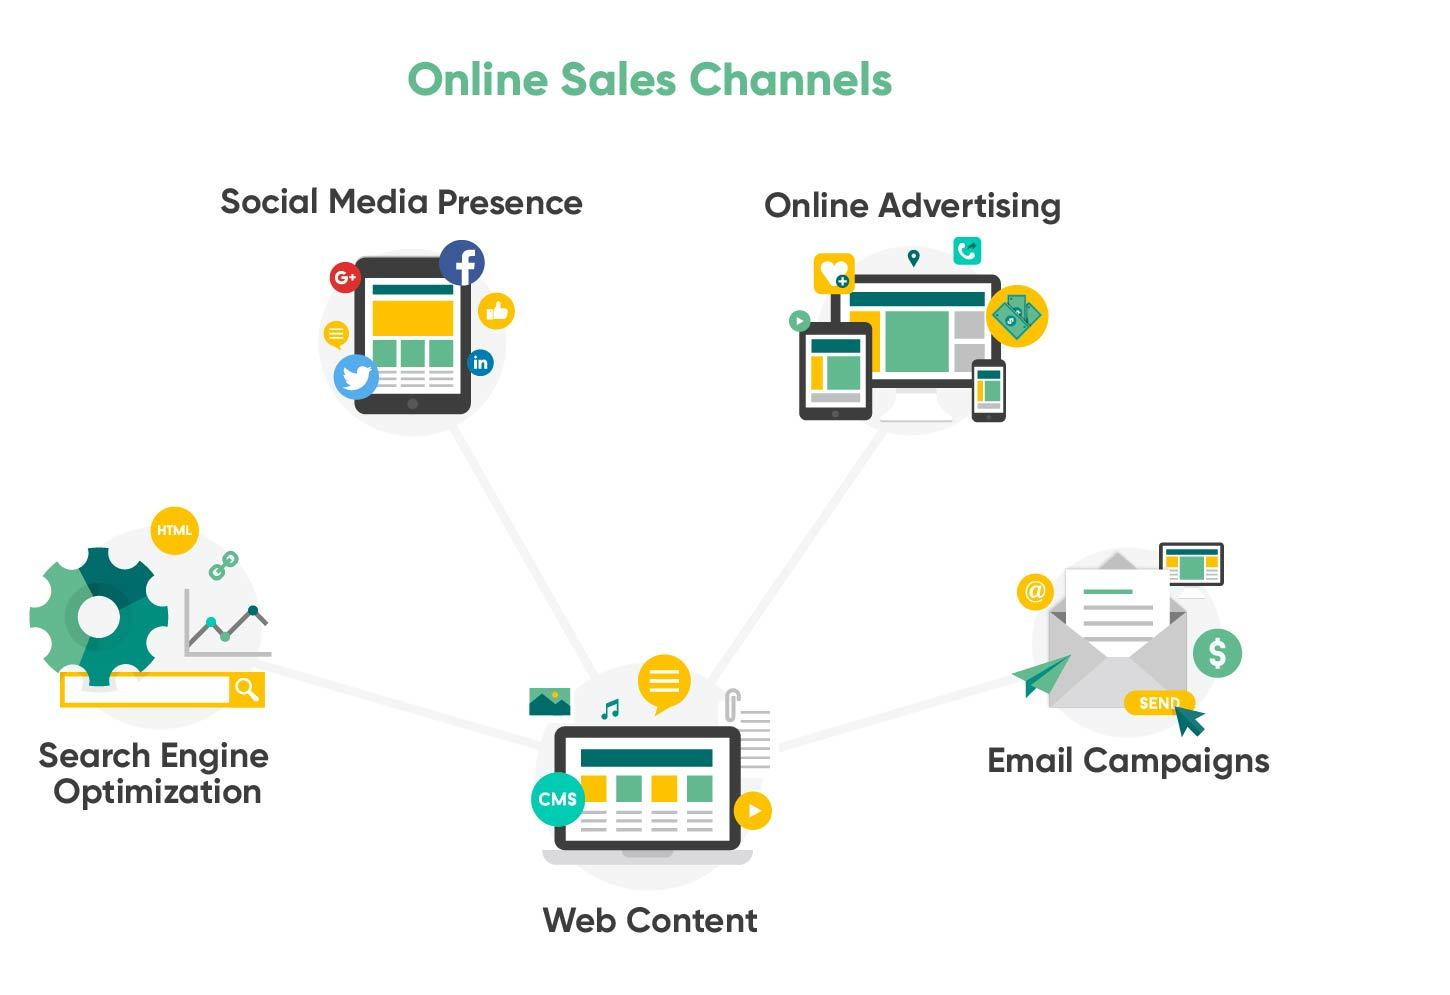 Online-Sales-Channels.jpg#asset:21556